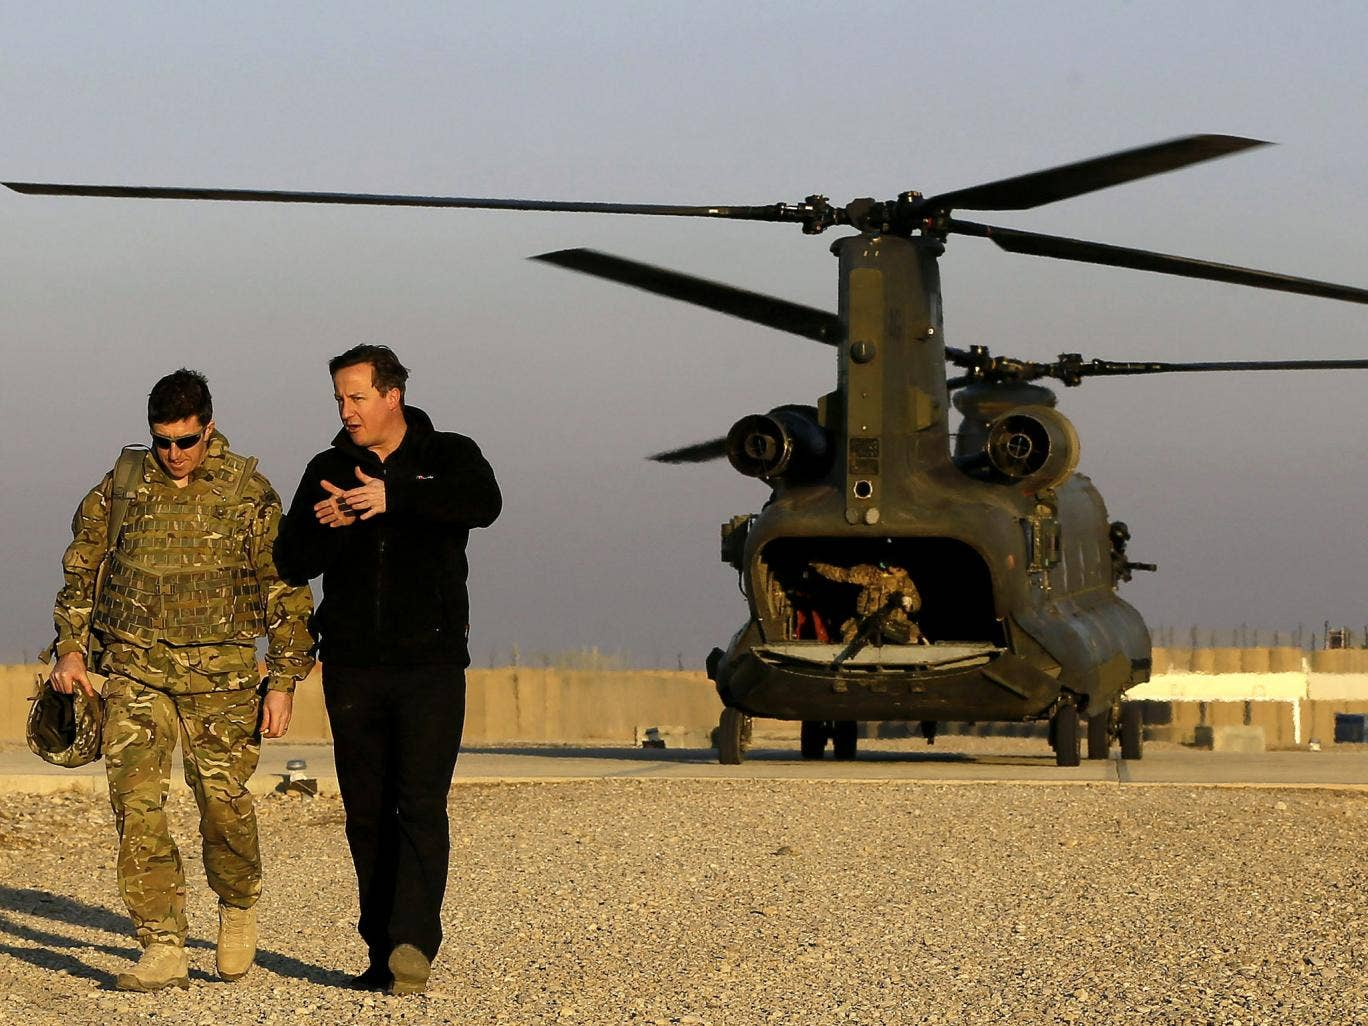 David Cameron during a visit to troops in Afghanistan last December